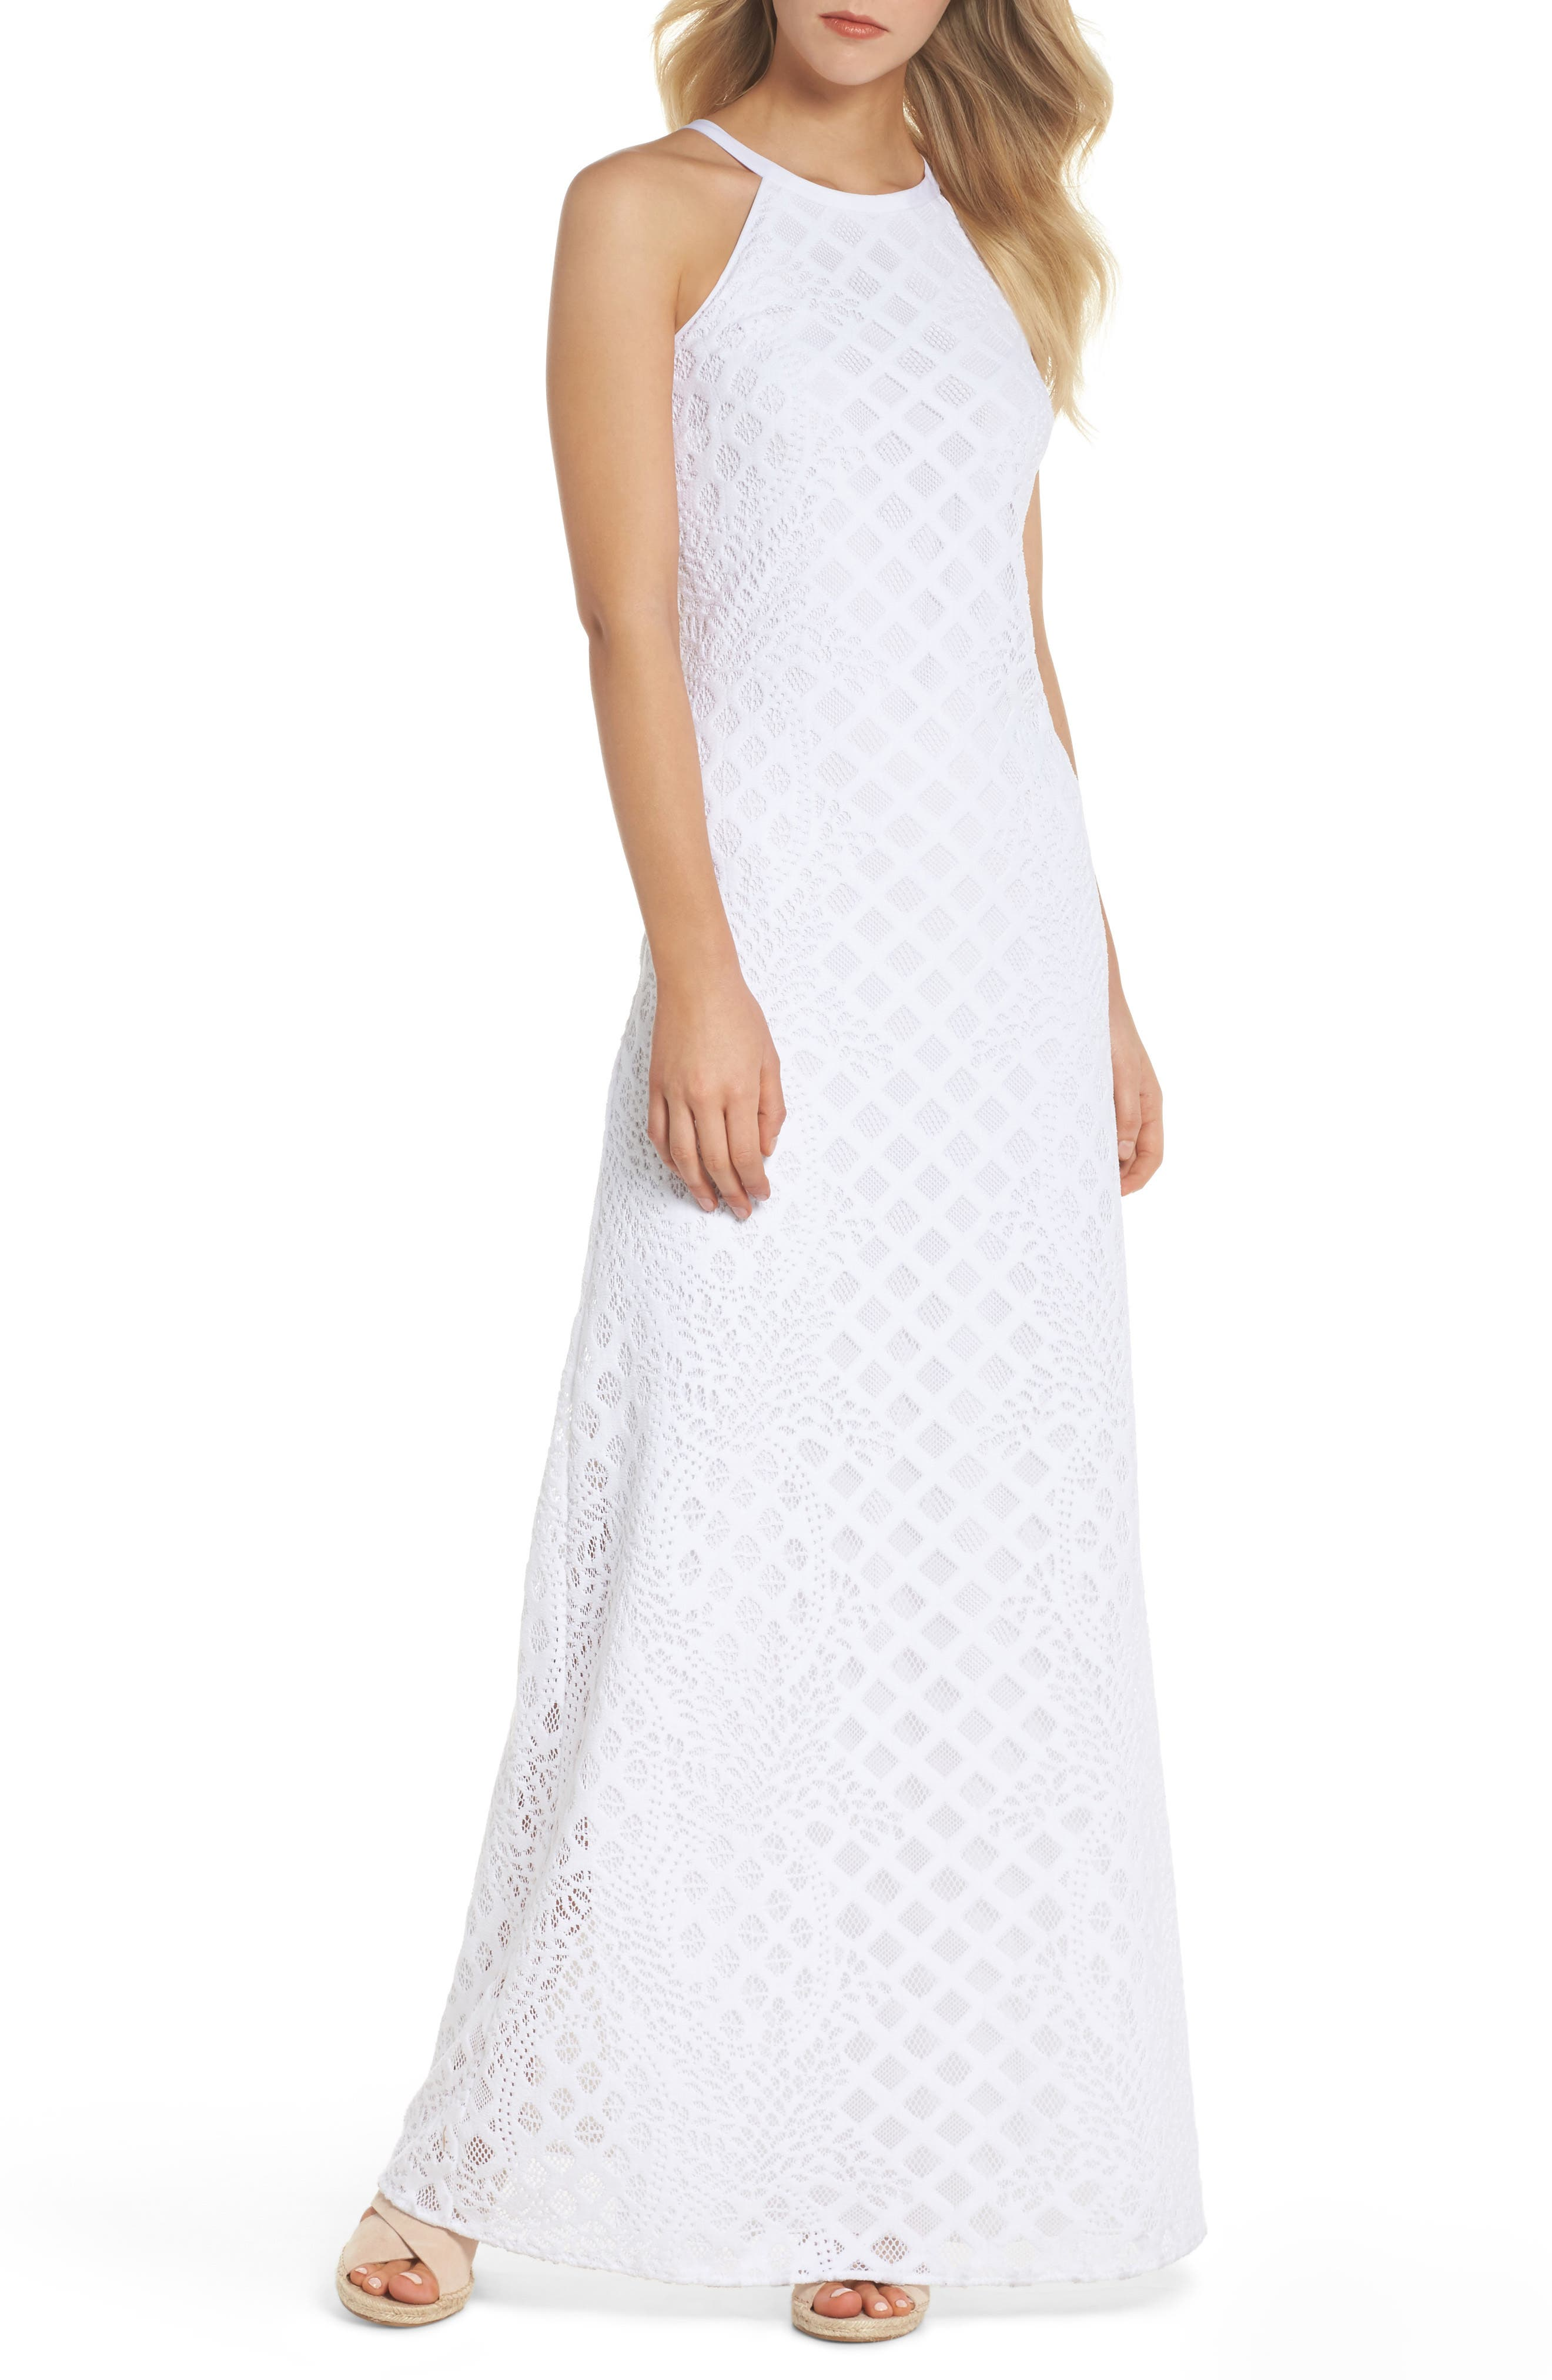 Pearl Maxi Dress,                             Main thumbnail 1, color,                             Resort White Pineapple Lace